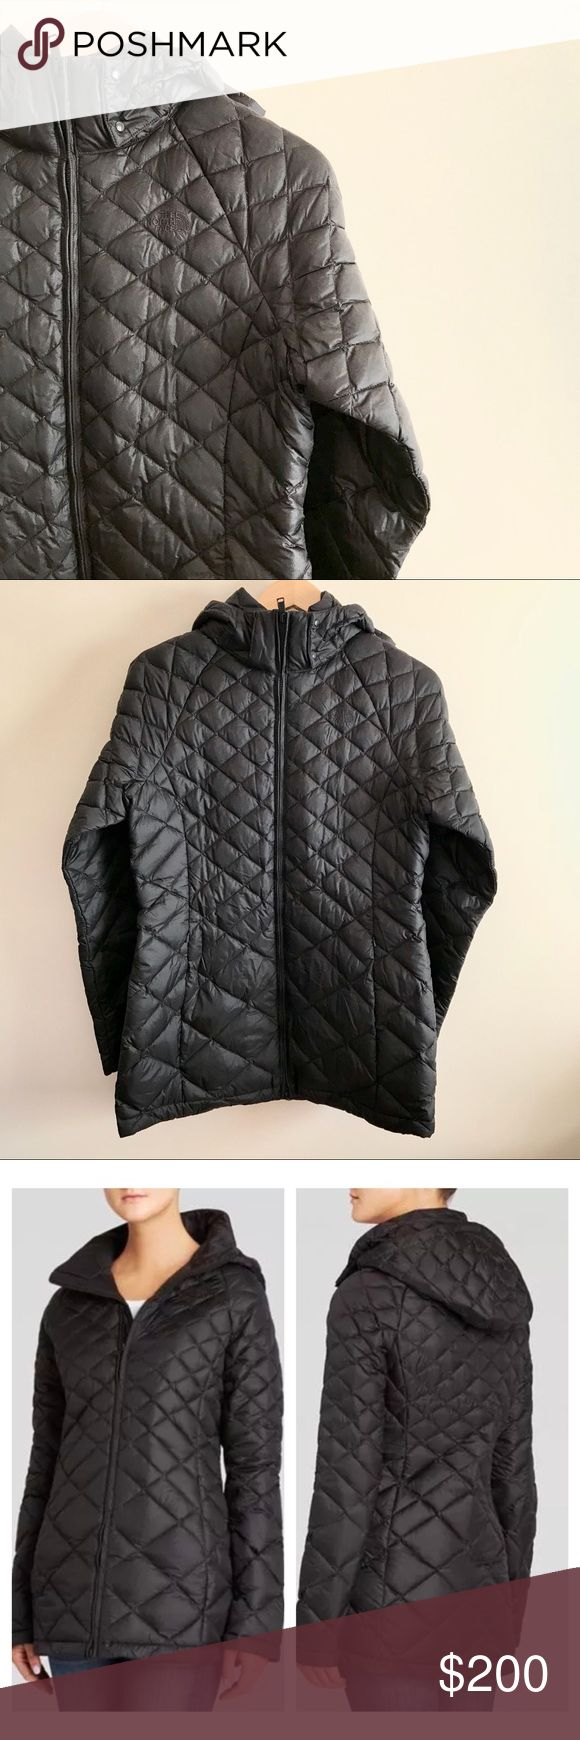 🆕NORTH FACE Goose Down Long Winter Jacket Women M ❄️NEW❄️Authentic NORTH FACE Women's MEDIUM SIZE Premium Goose Down Diamond Quilted Black Long Winter PUFFER Jacket/Coat. 💖WITH DETACHABLE HOOD💖 New without tag (never worn). Beautiful jacket, but I have something similar already. Sleek and flattering fit! Fits true to size with room for layering underneath! ❤️OFFERS WELCOME (Please Use Offer Button)❤️ The North Face Jackets & Coats Puffers